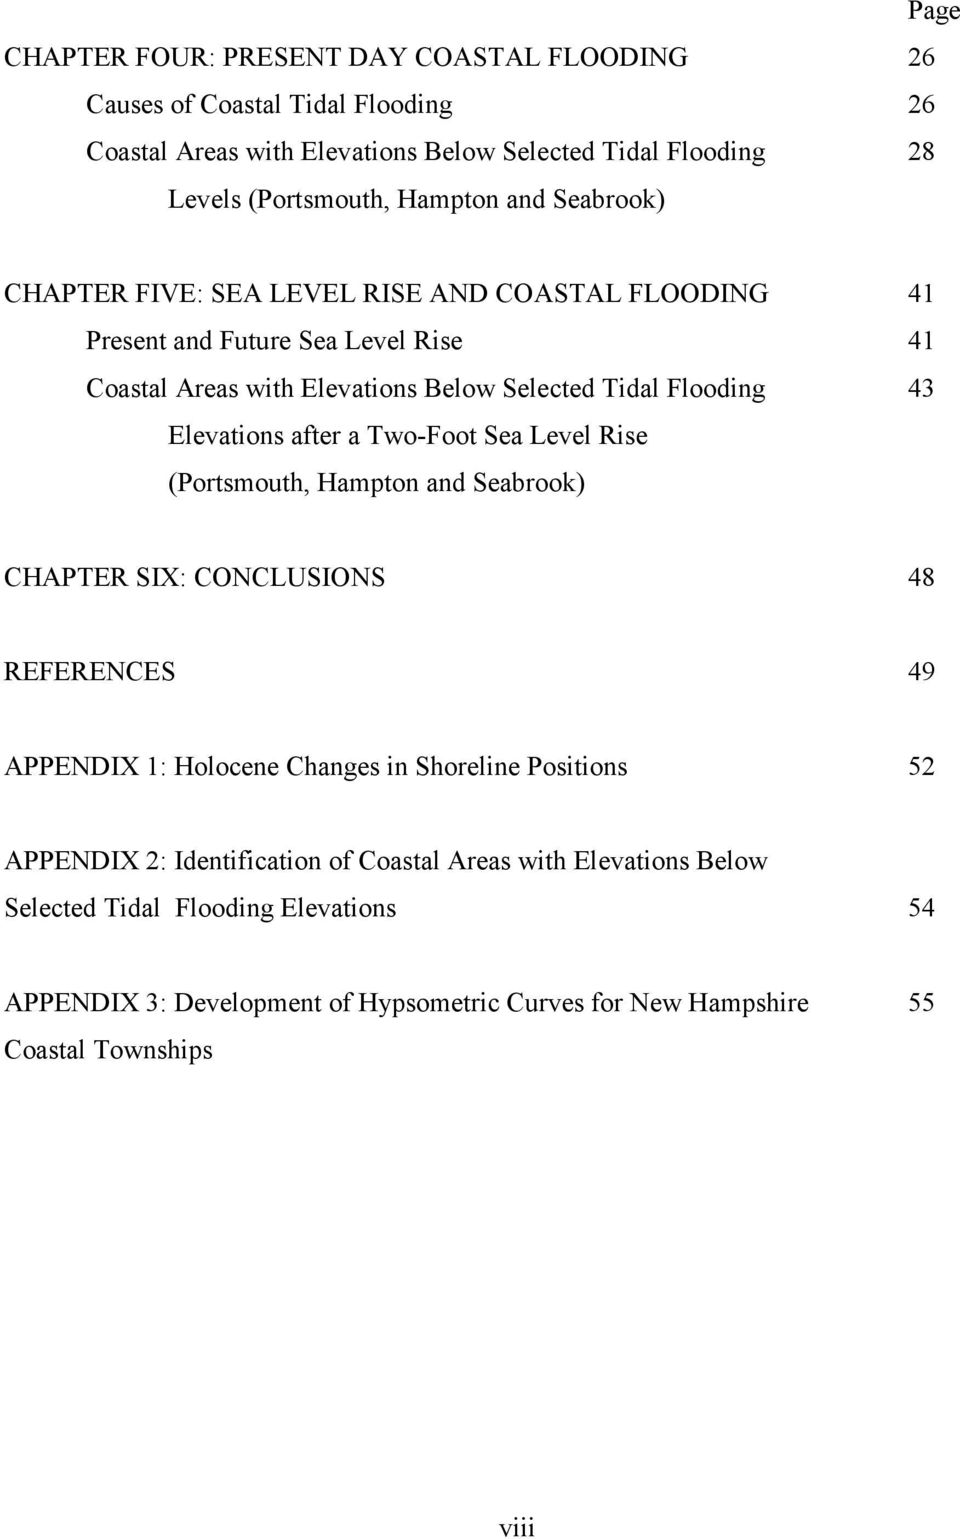 after a Two-Foot Sea Level Rise (Portsmouth, Hampton and Seabrook) CHAPTER SIX: CONCLUSIONS 48 REFERENCES 49 APPENDIX 1: Holocene Changes in Shoreline Positions 52 APPENDIX 2: